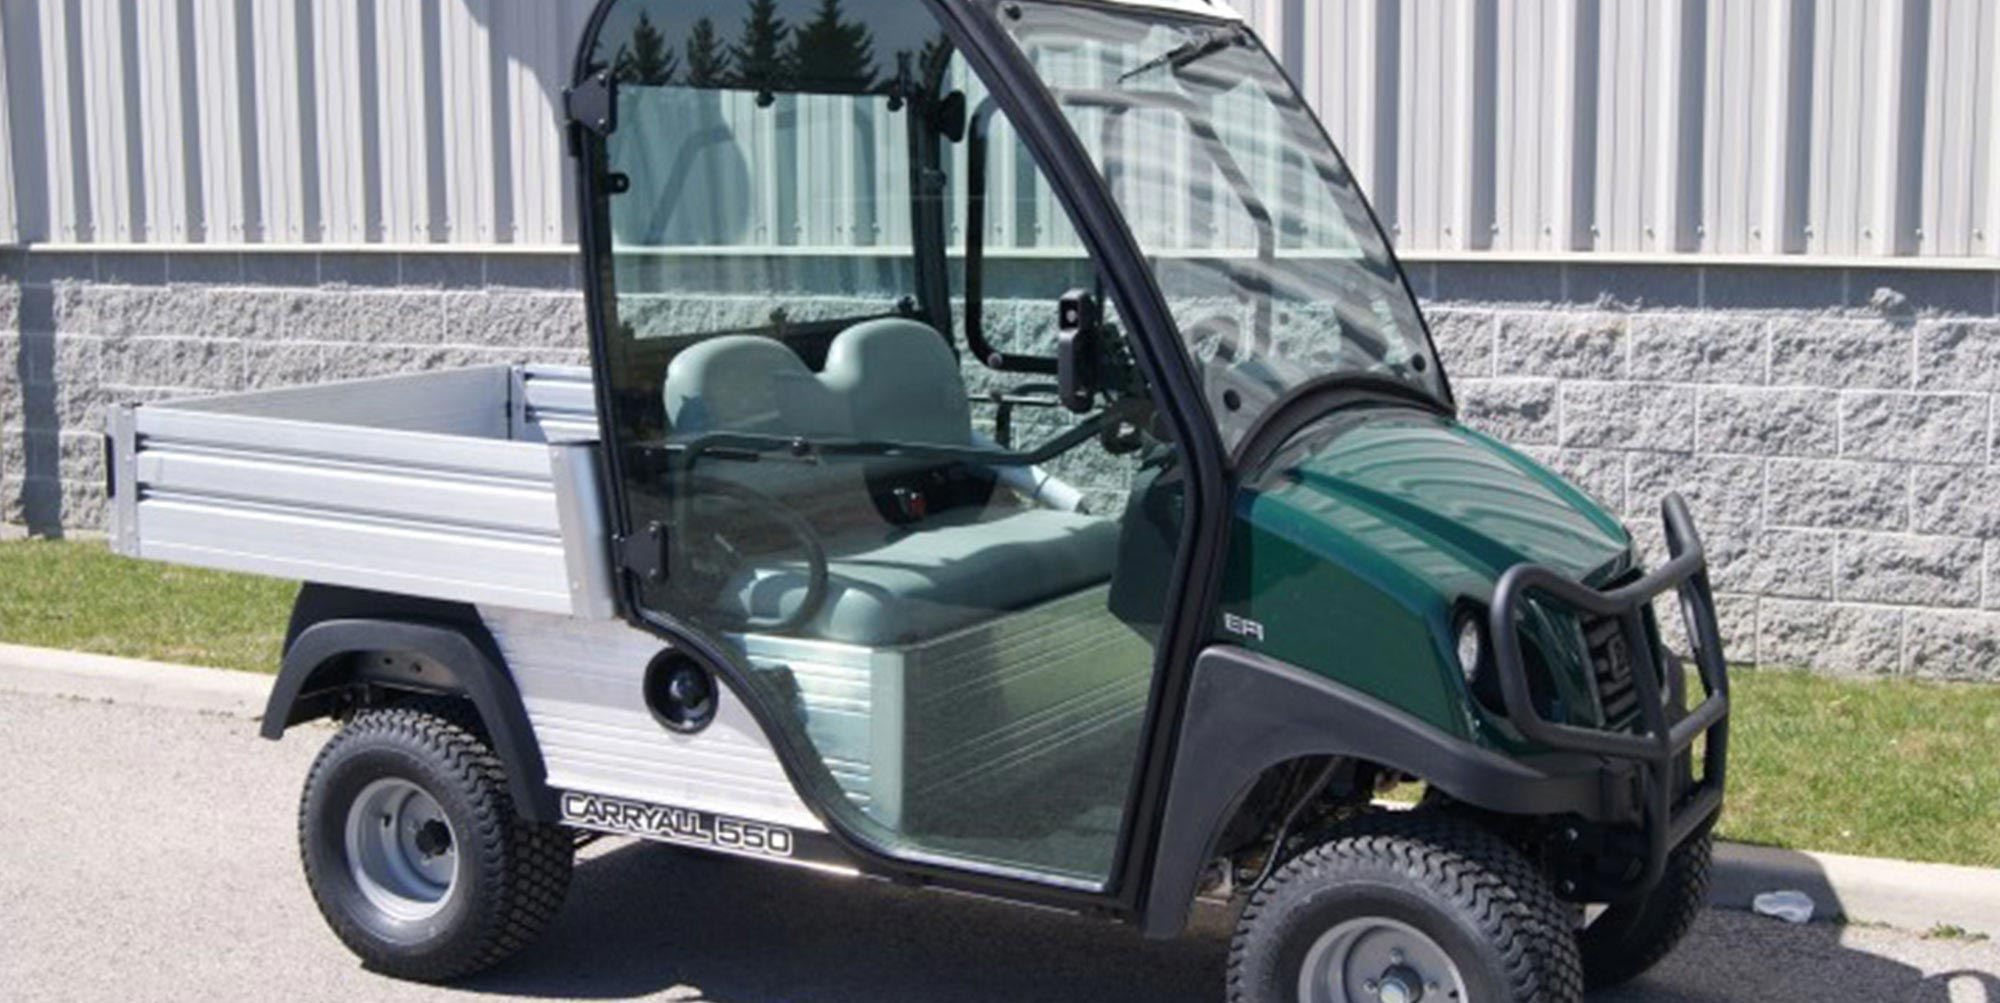 Club Car Carryall 550